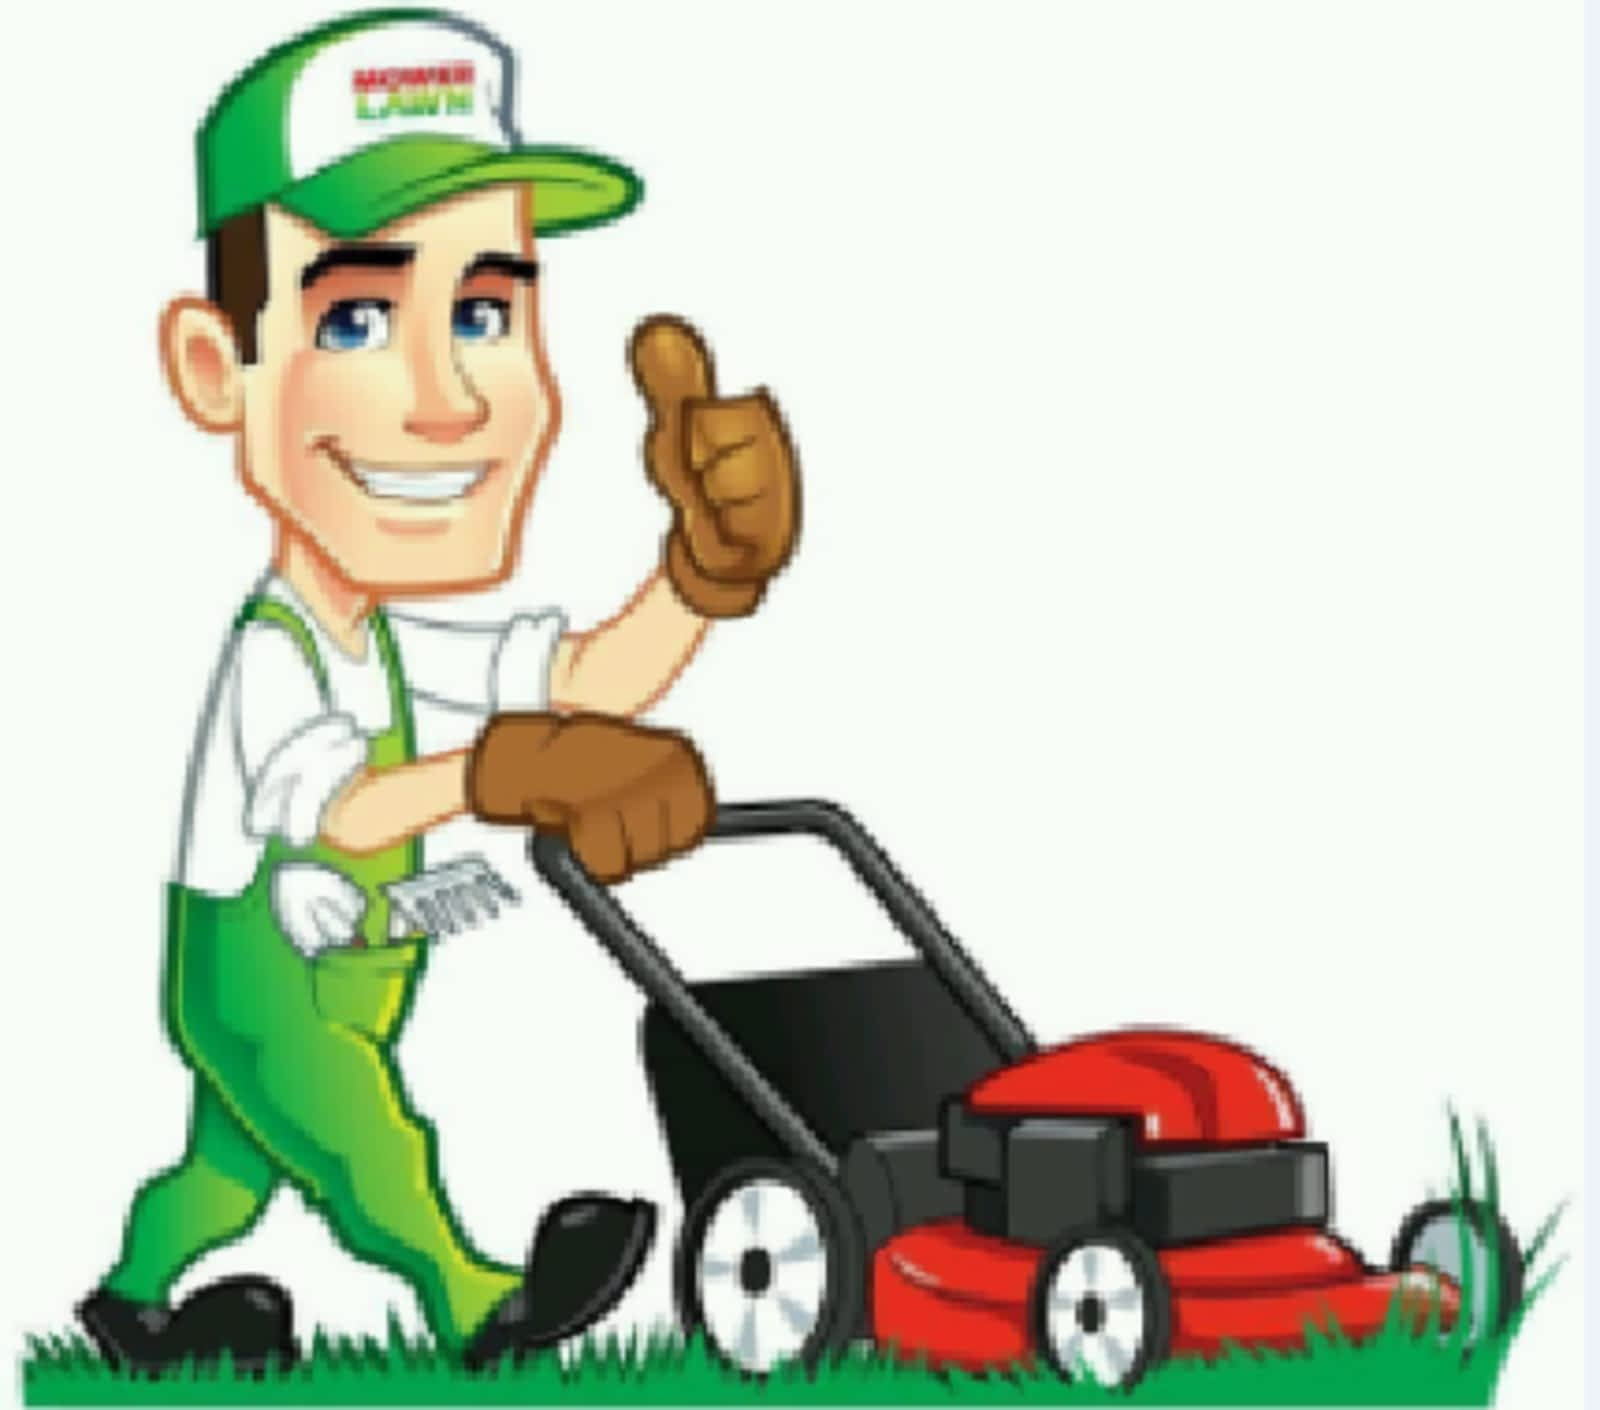 Huronia maintenance opening hours. Free clipart property mowing and snow removal